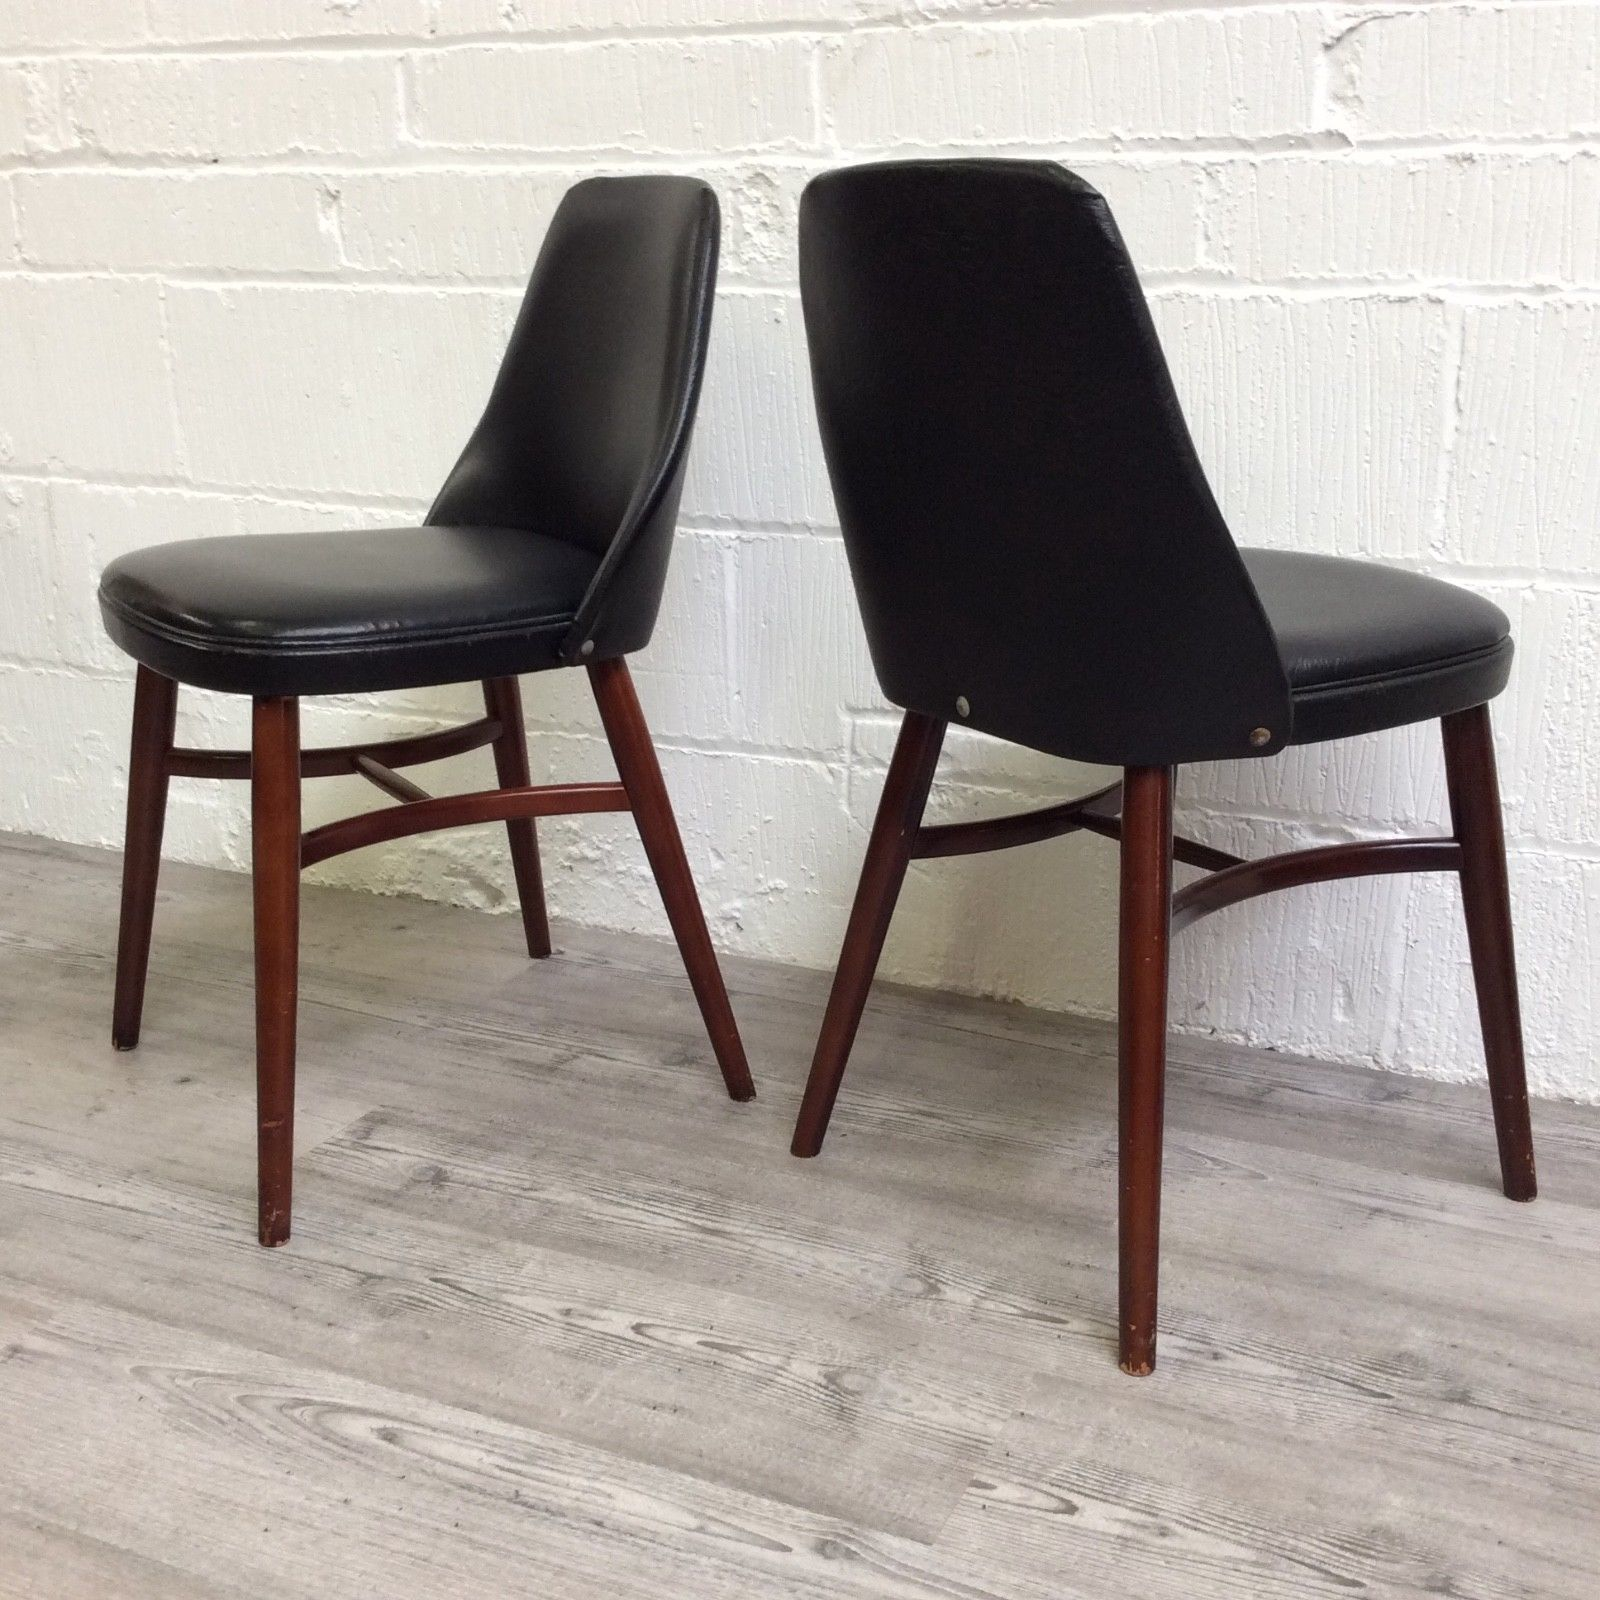 Pleasing 2 X Vintage Retro Mid Century Teak Dining Chairs Black Vinyl Danish Style Gmtry Best Dining Table And Chair Ideas Images Gmtryco